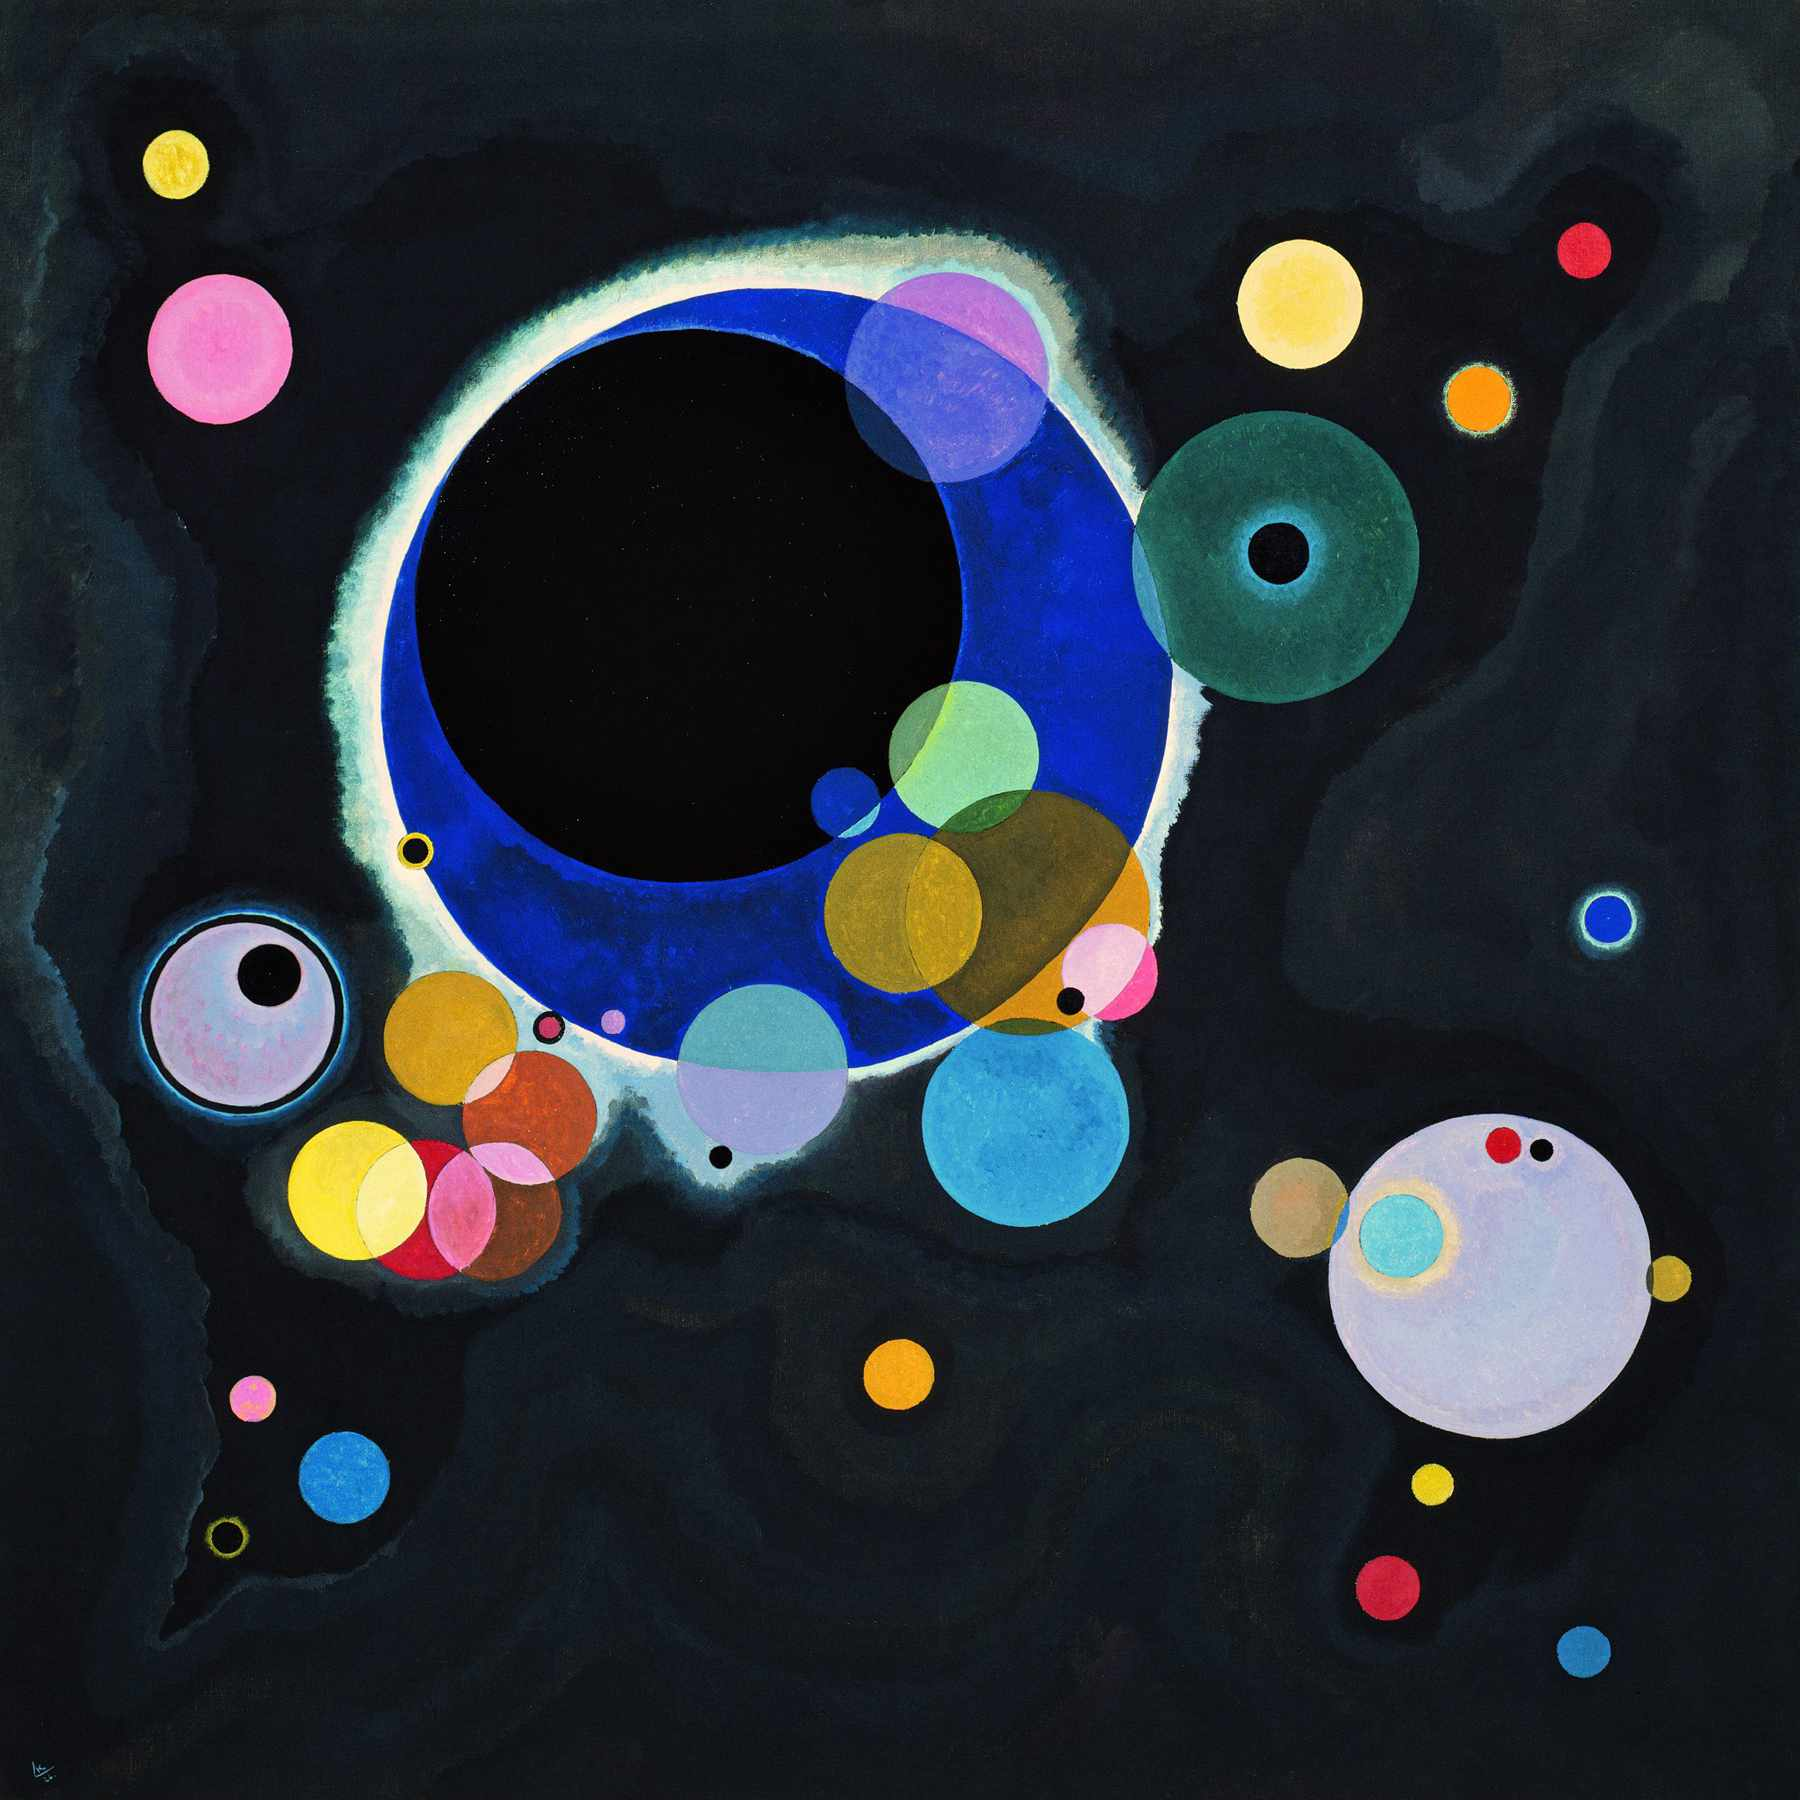 Wassily Kandinsky (Russian, 1866-1944) Wassily Kandinsky (Russian, 1866-1944). Several Circles (Einige Kreise), January-February 1926. Oil on canvas. 55 1/4 x 55 3/8 in. (140.3 x 140.7 cm). Solomon R. Guggenheim Founding Collection, By gift 41.283. Solomon R. Guggenheim Museum, New York.